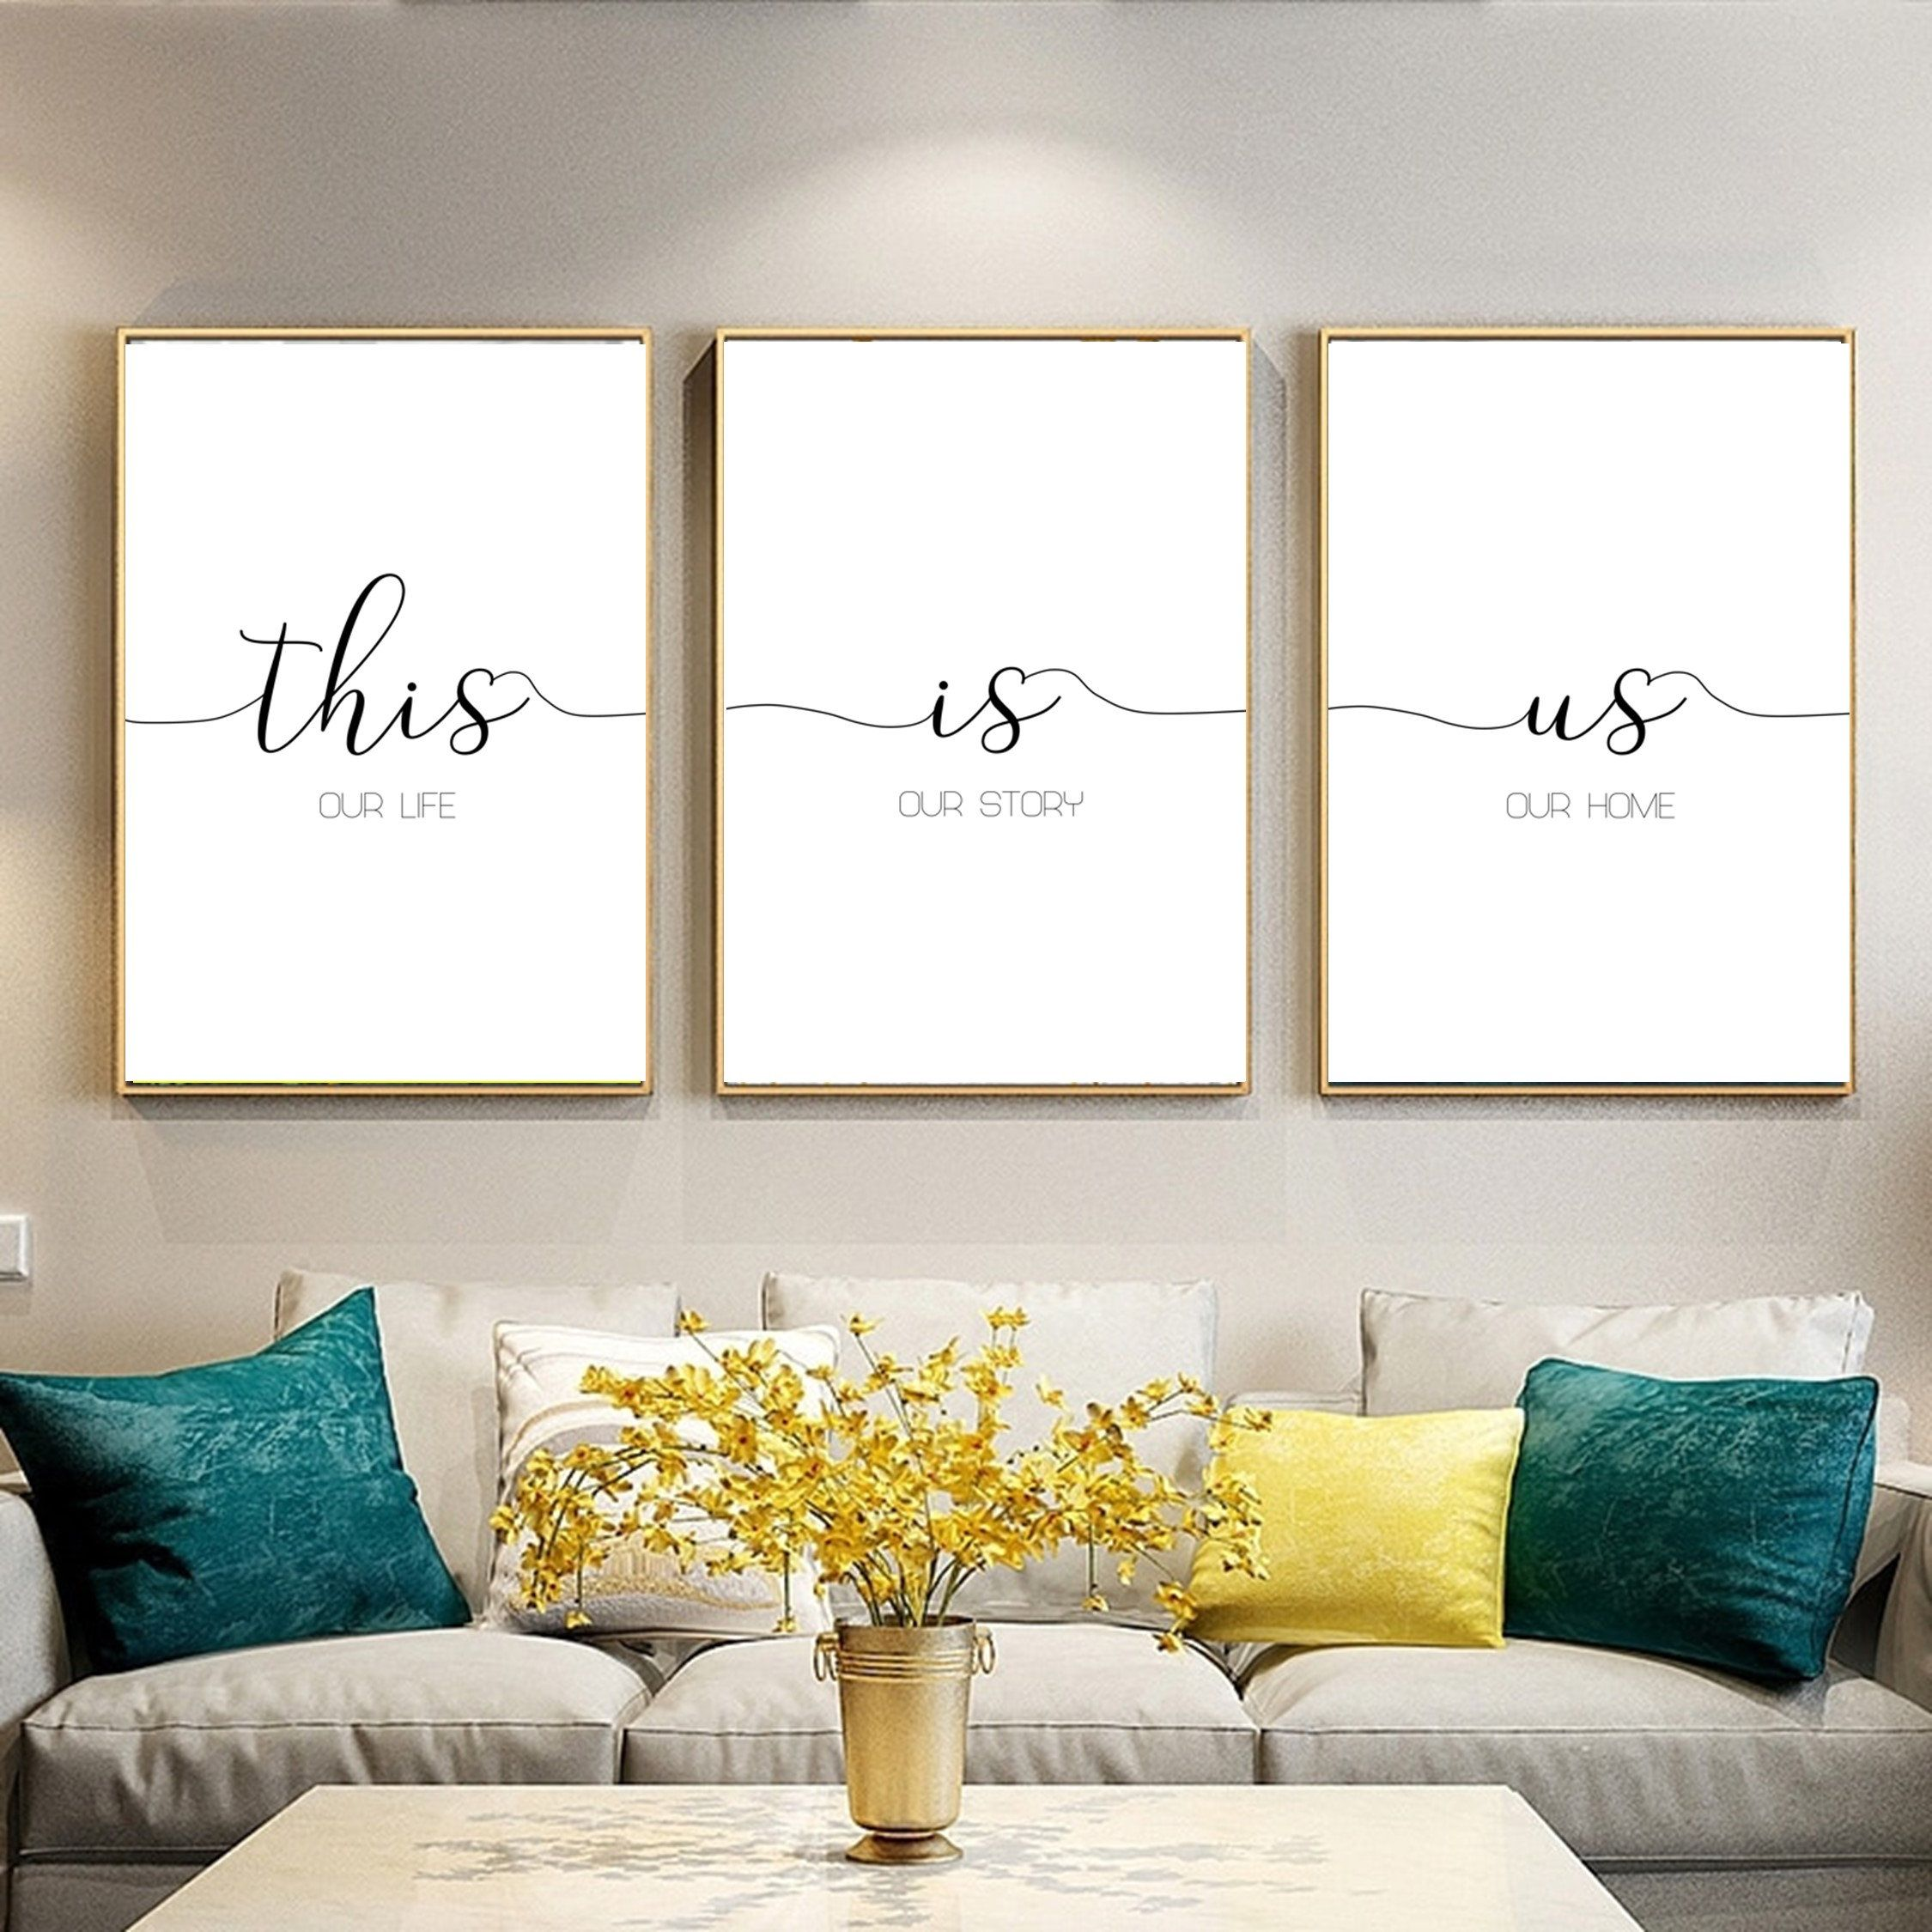 Prints Set Of 3 This Is Us Family Sign Family Quotes Home Decor Living Room Wall Decor Living Room Modern Living Room Decor Cozy Printable Wall Art Living Room